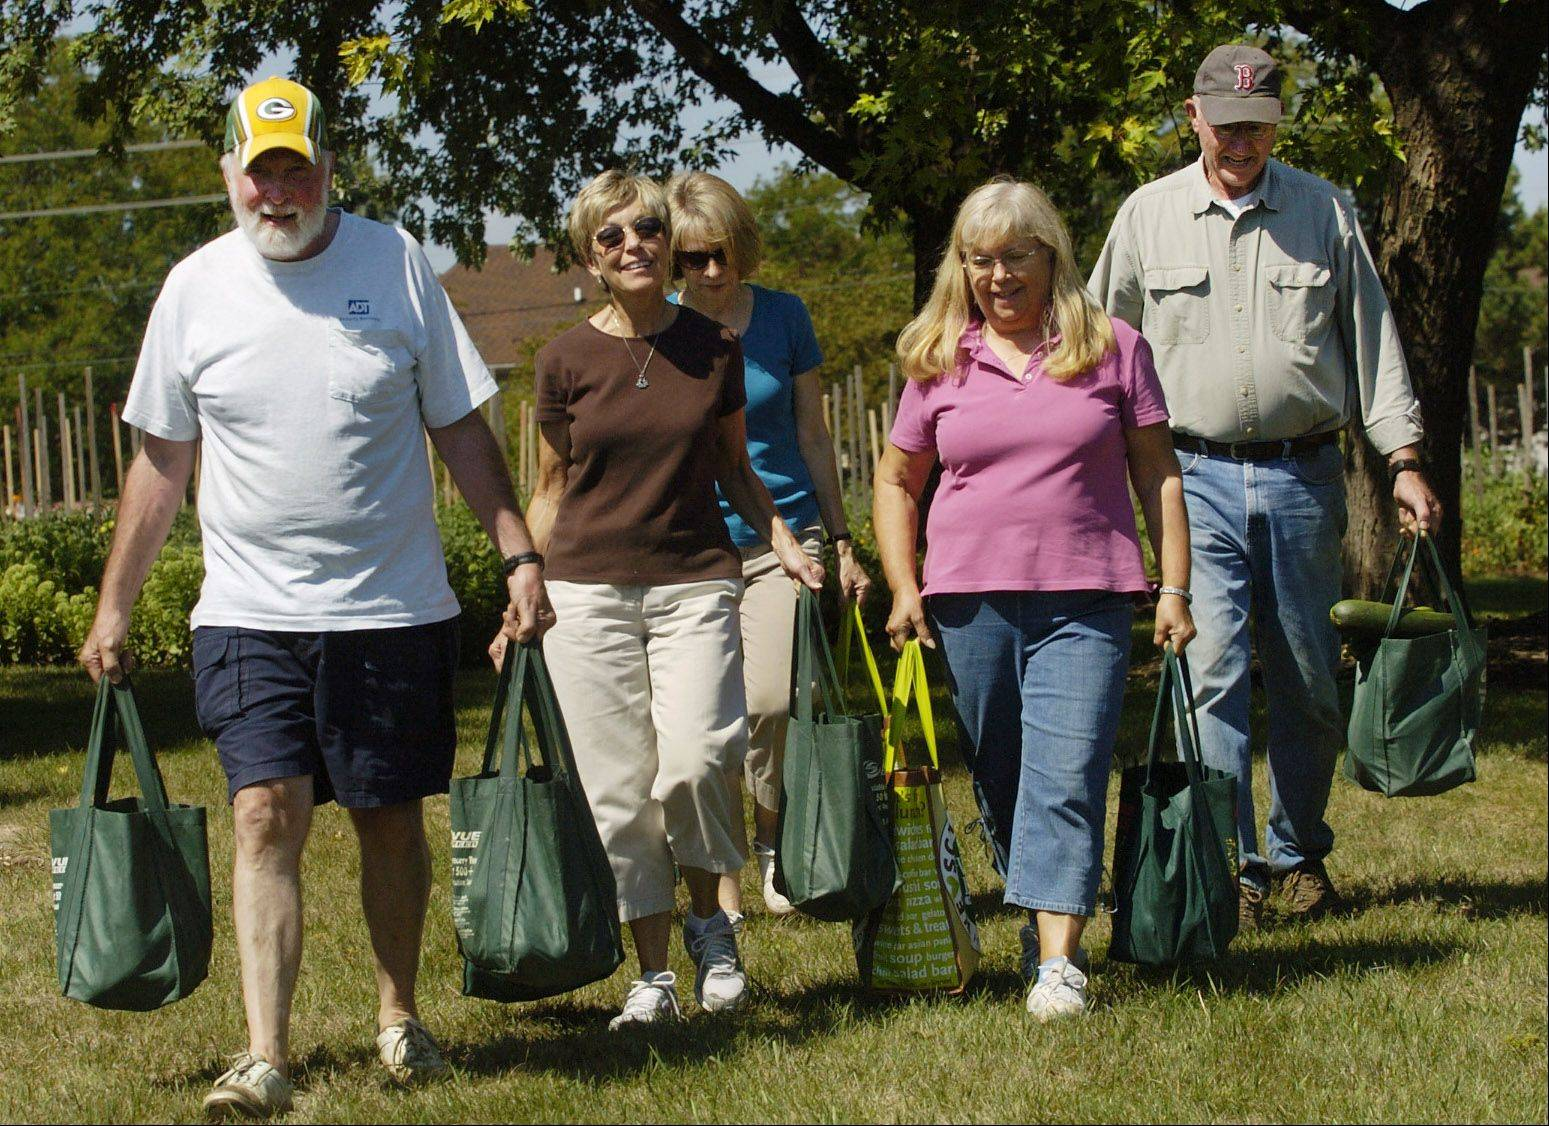 Tomato pickers from left, Richard Neidl, Nancy Erickson, Tina Lawrenz, Meta Anderson and Steven Larson carry their haul of tomatoes from the tomato garden behind Covenant Church in Schaumburg.